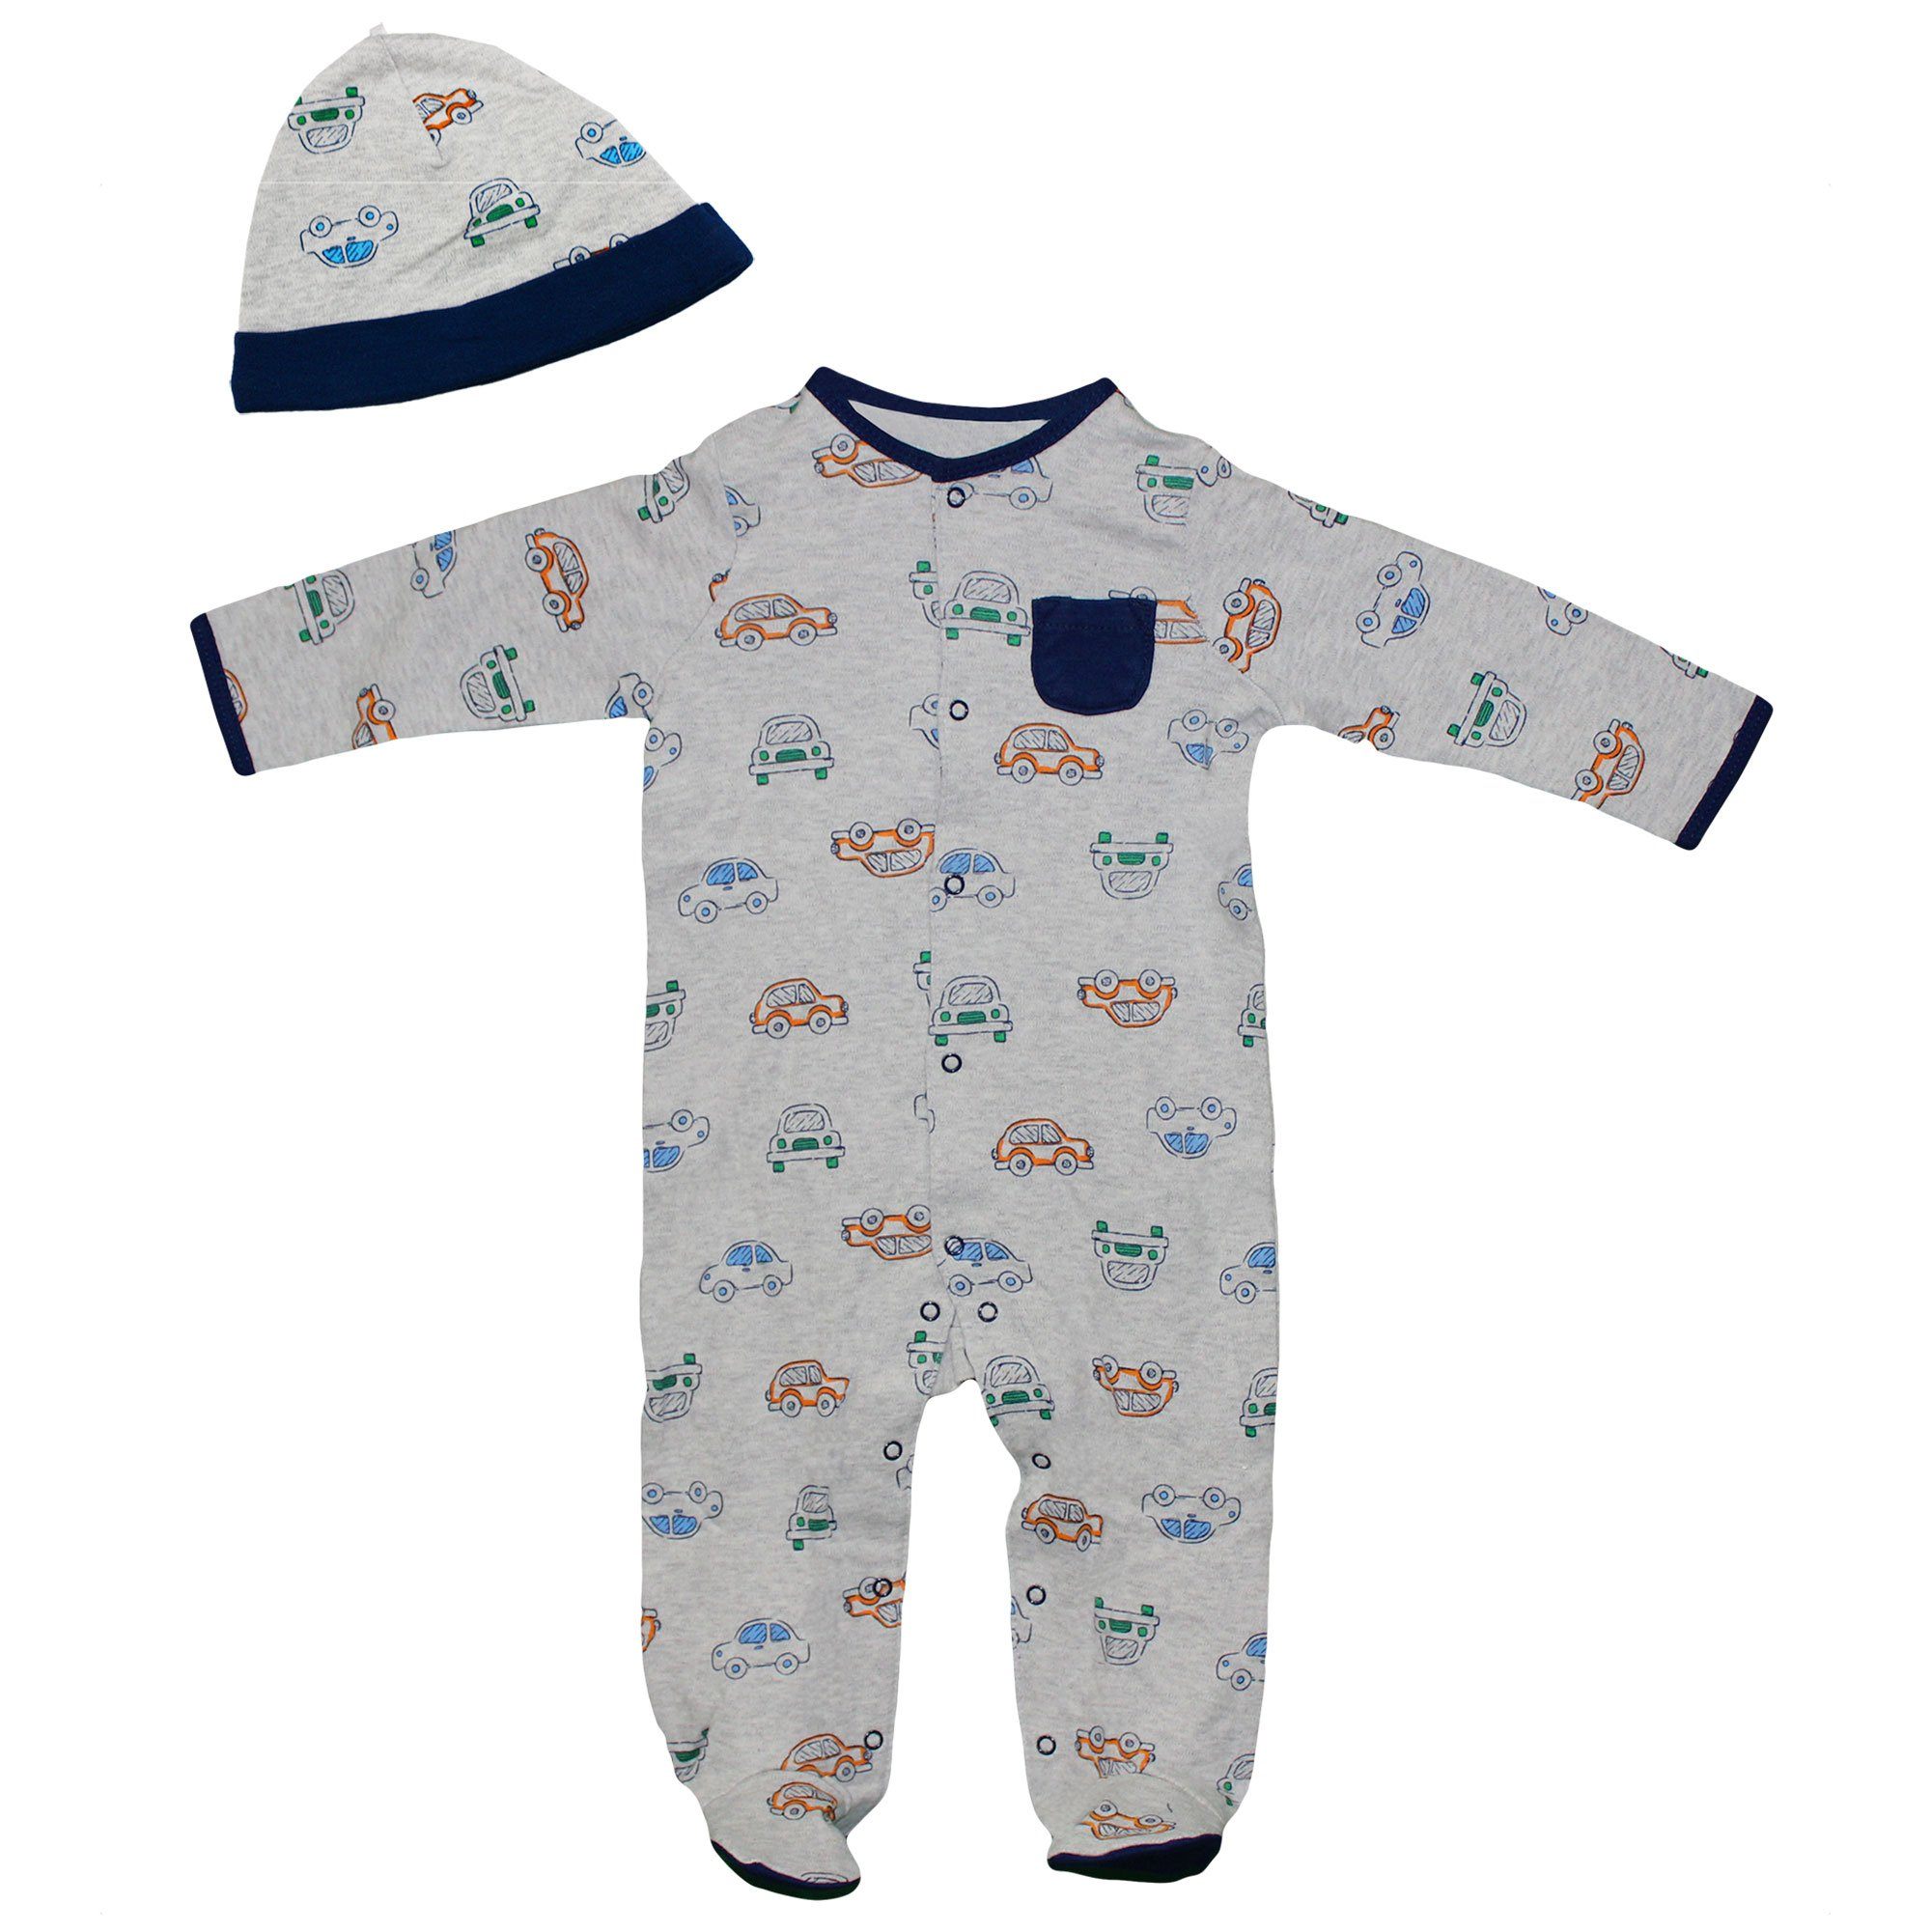 Little Me Baby Boys Cars Footie Pajamas Footed Sleeper and Hat Grey Navy Blue 6M